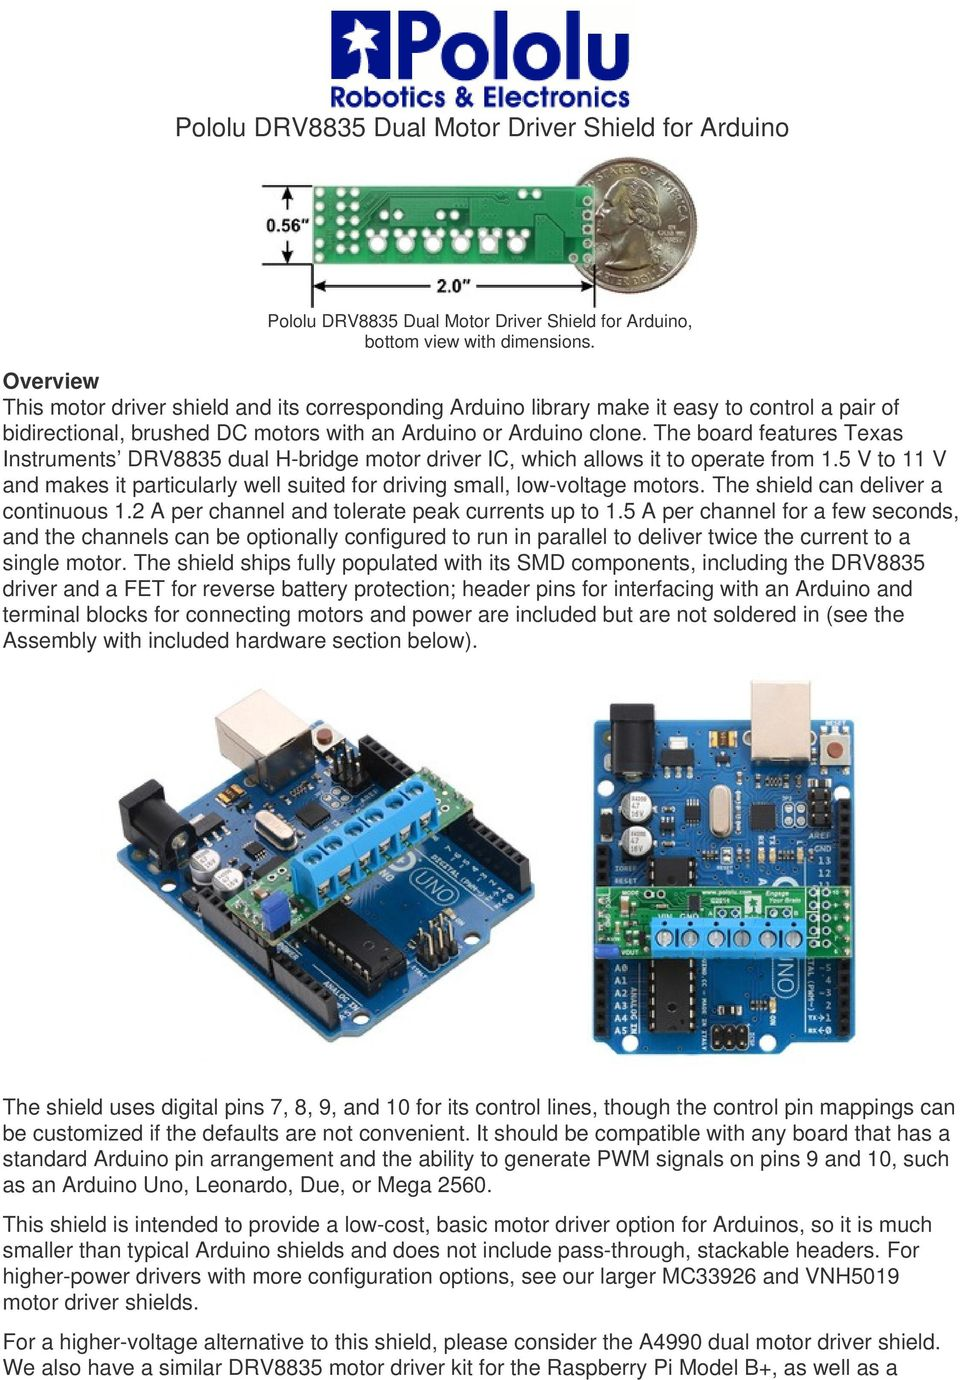 Pololu Drv8835 Dual Motor Driver Shield For Arduino Pdf Bridge Circuit Bidirectional Control The Board Features Texas Instruments H Ic Which Allows